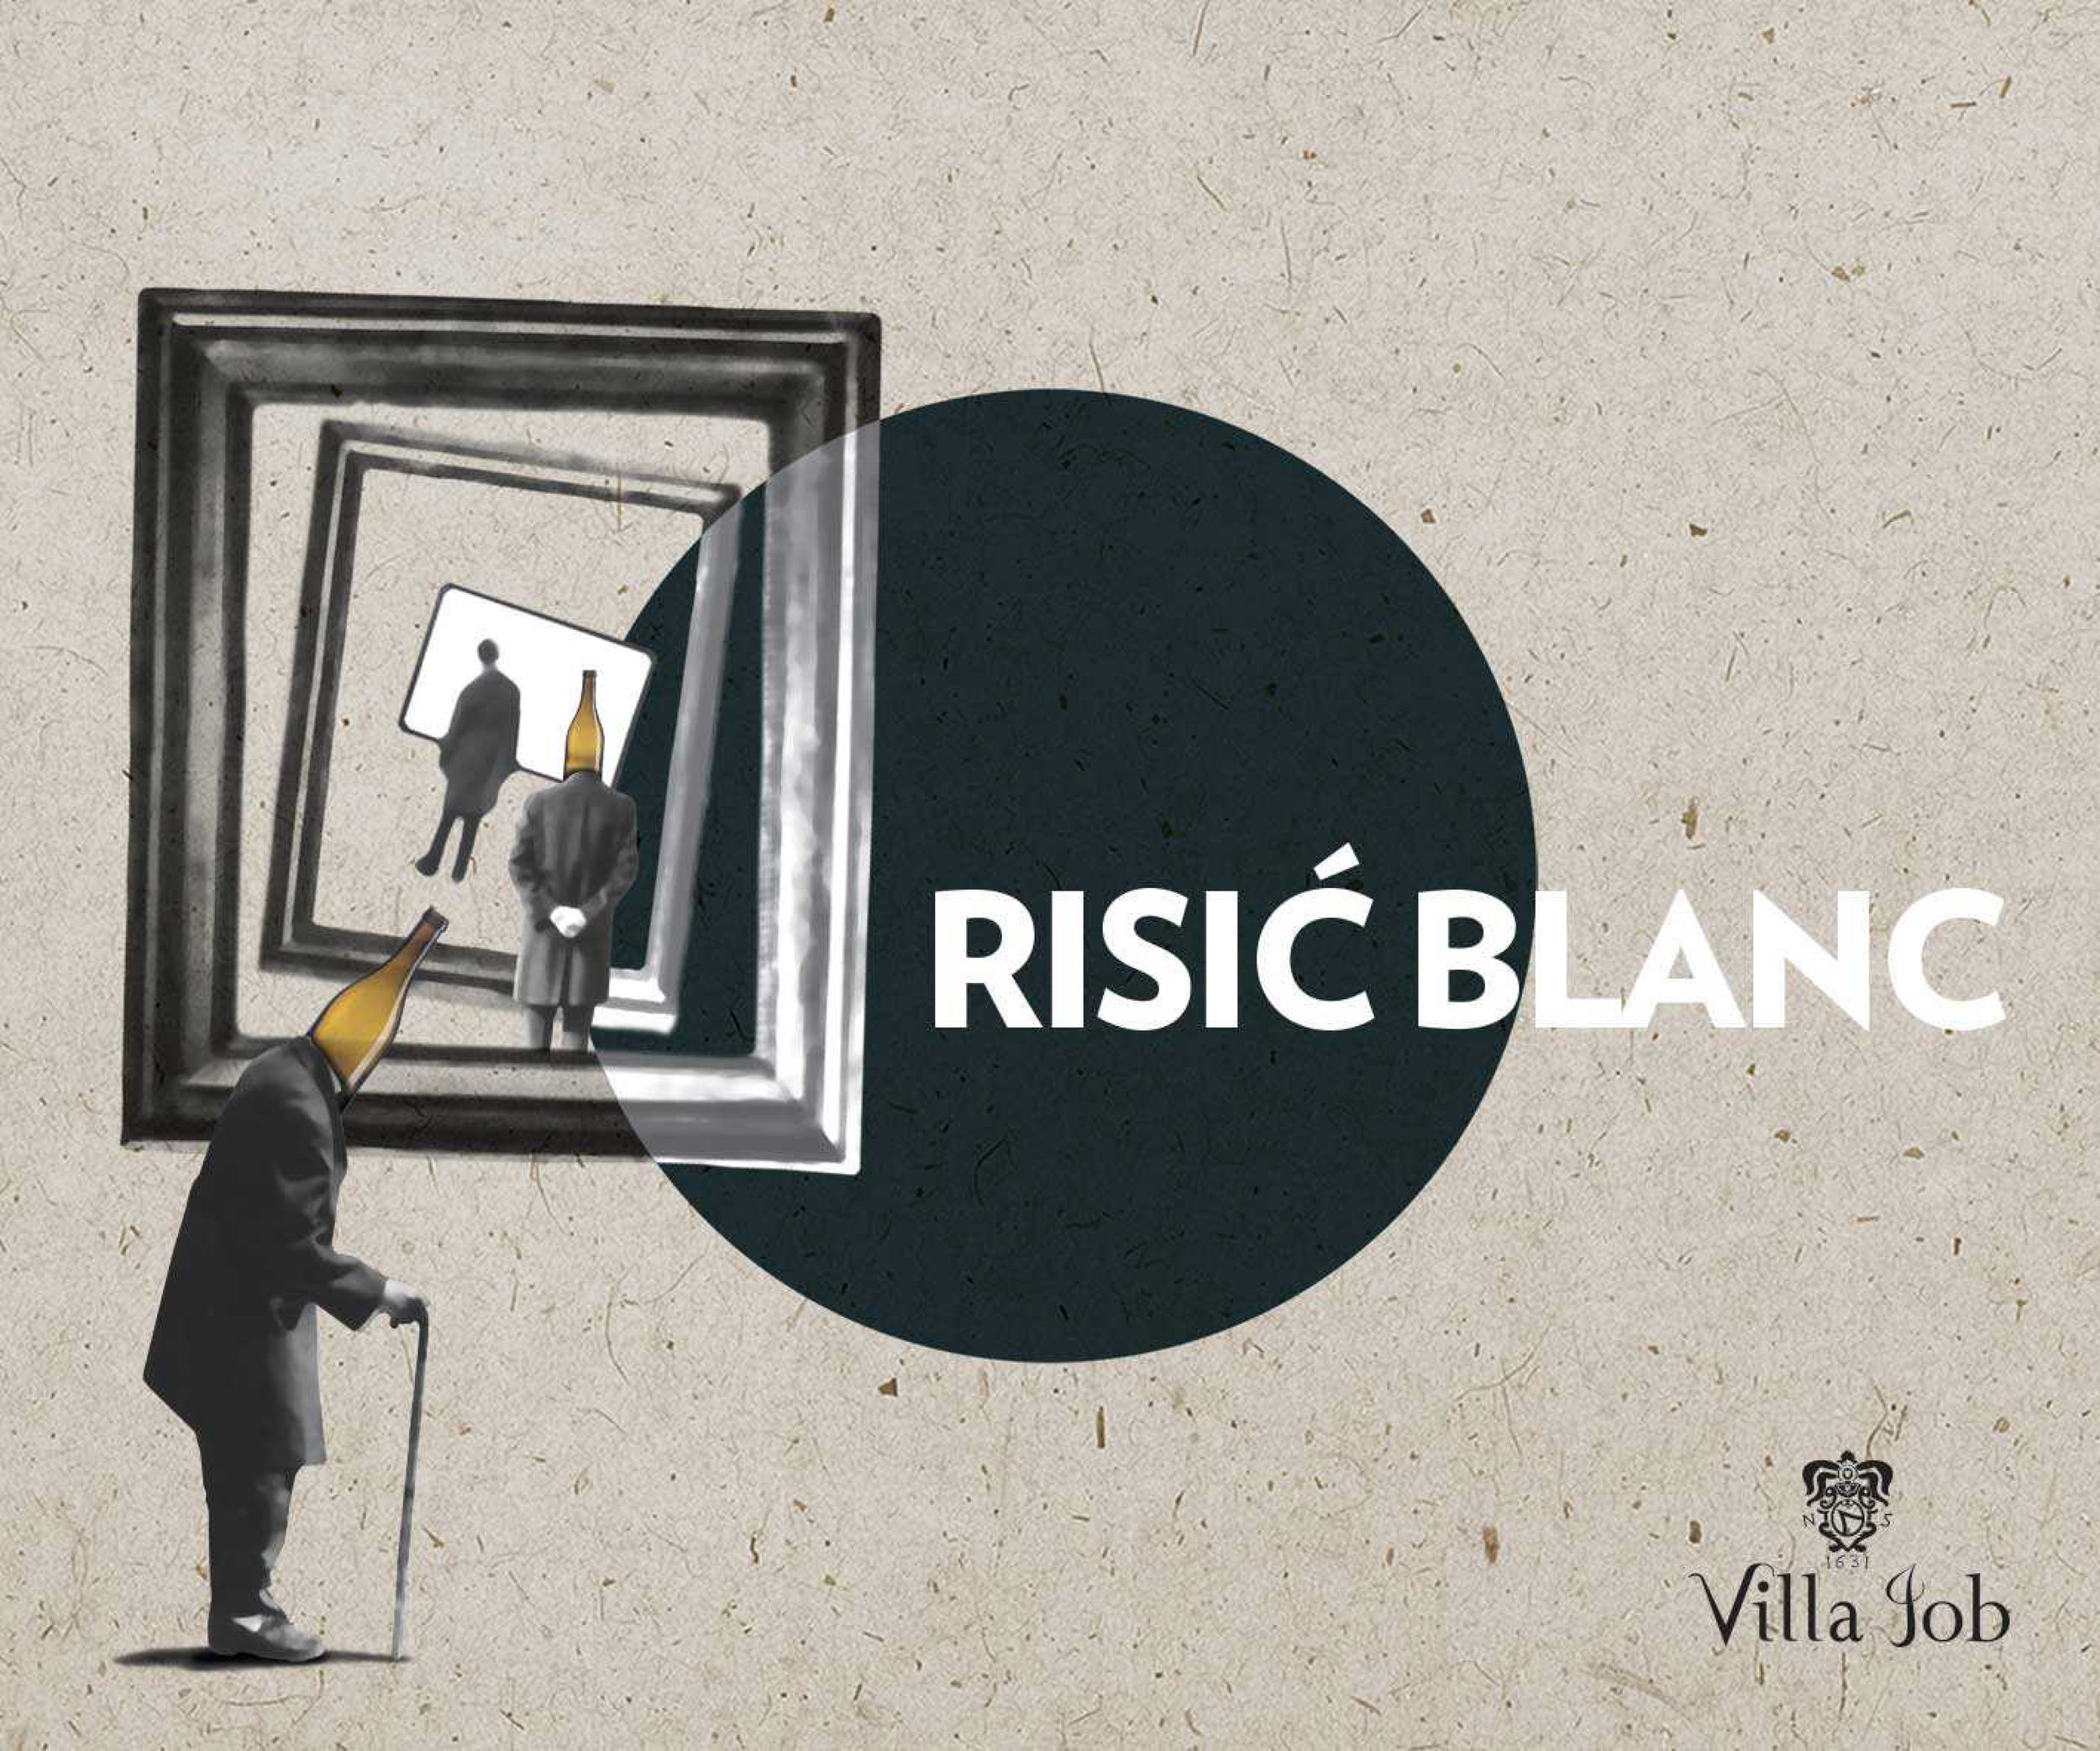 BK Villa Job - Risic Blanc.jpg